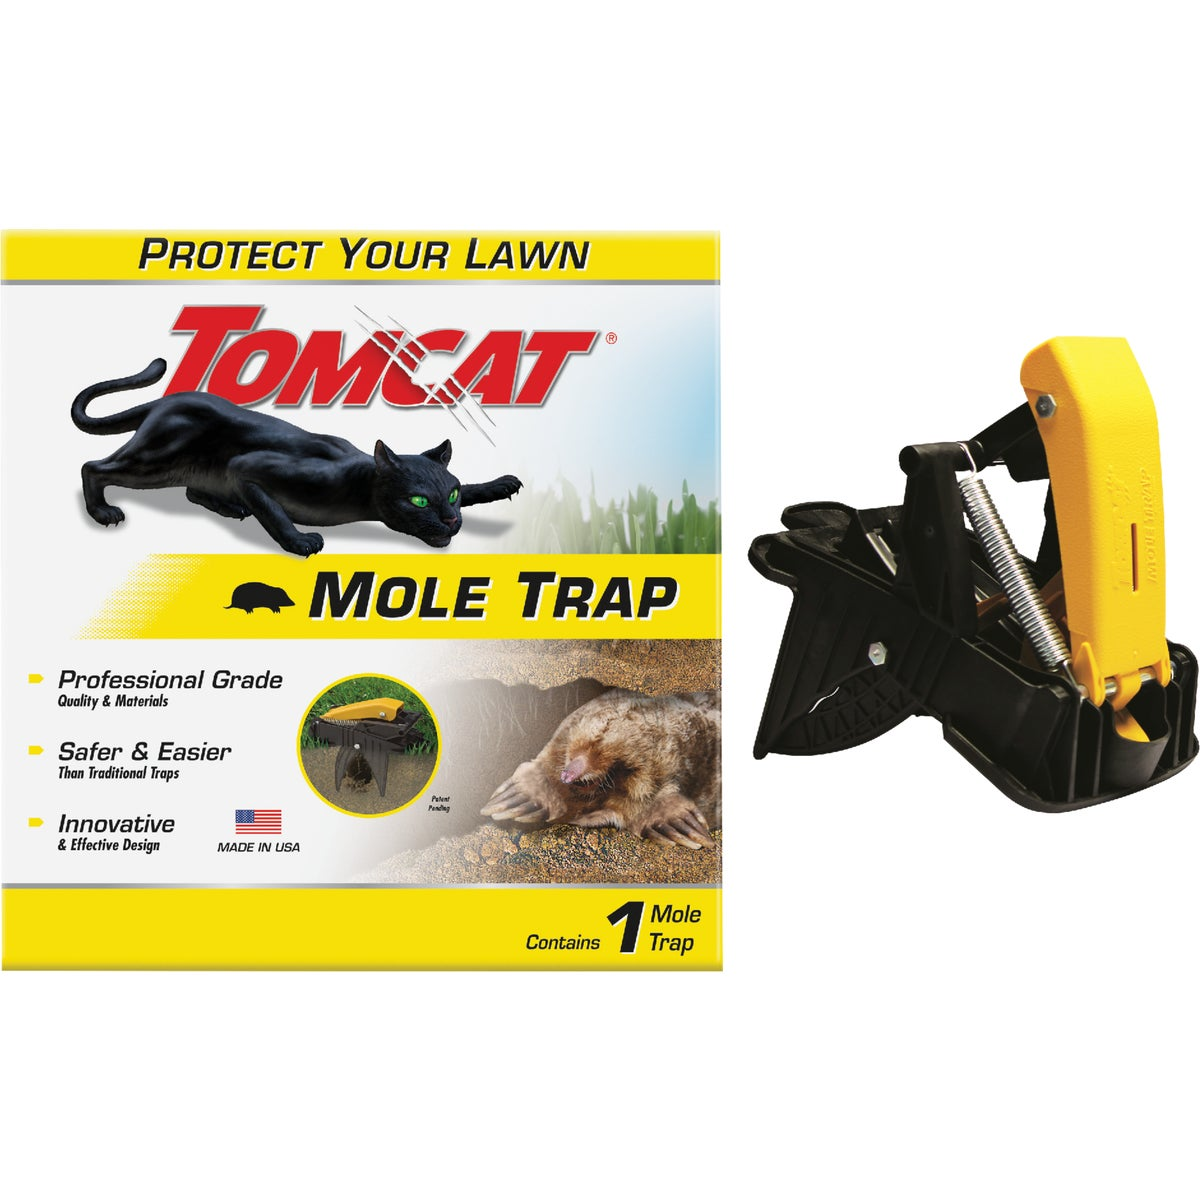 TOMCAT MOLE TRAP - BL34150 by Motomco Ltd